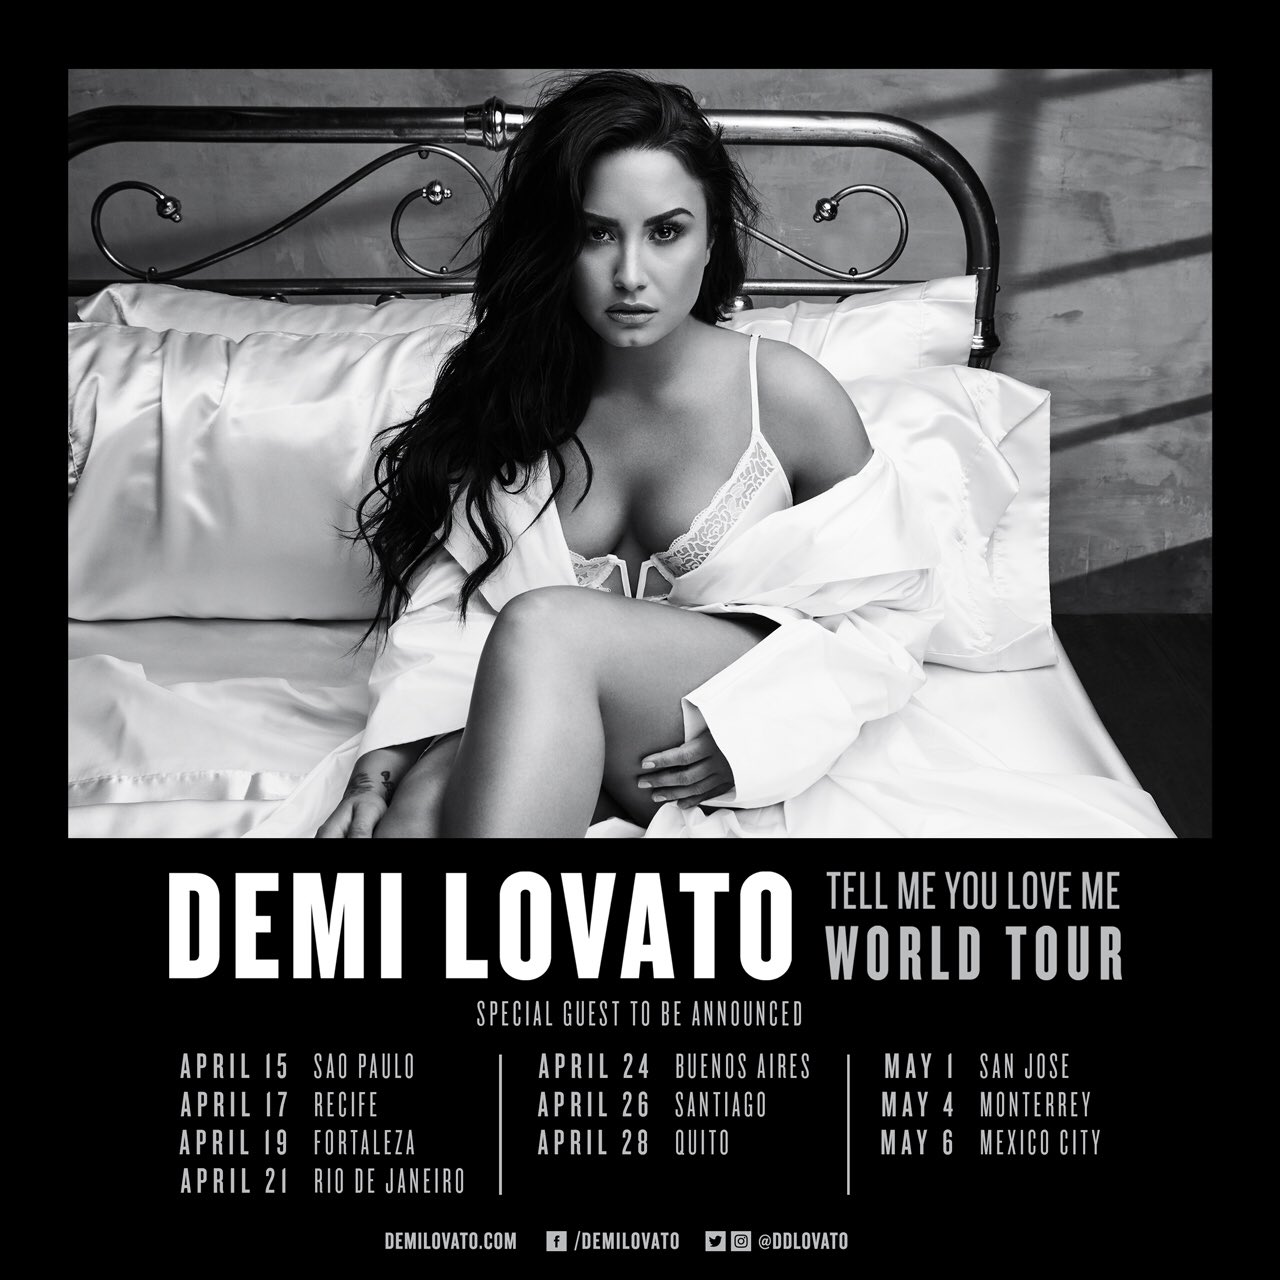 Brazil and Chile!! Tickets for the #TellMeYouLoveMeTour are on sale now ������ https://t.co/FdRYQe0I9Y https://t.co/4QuZXb1gRn